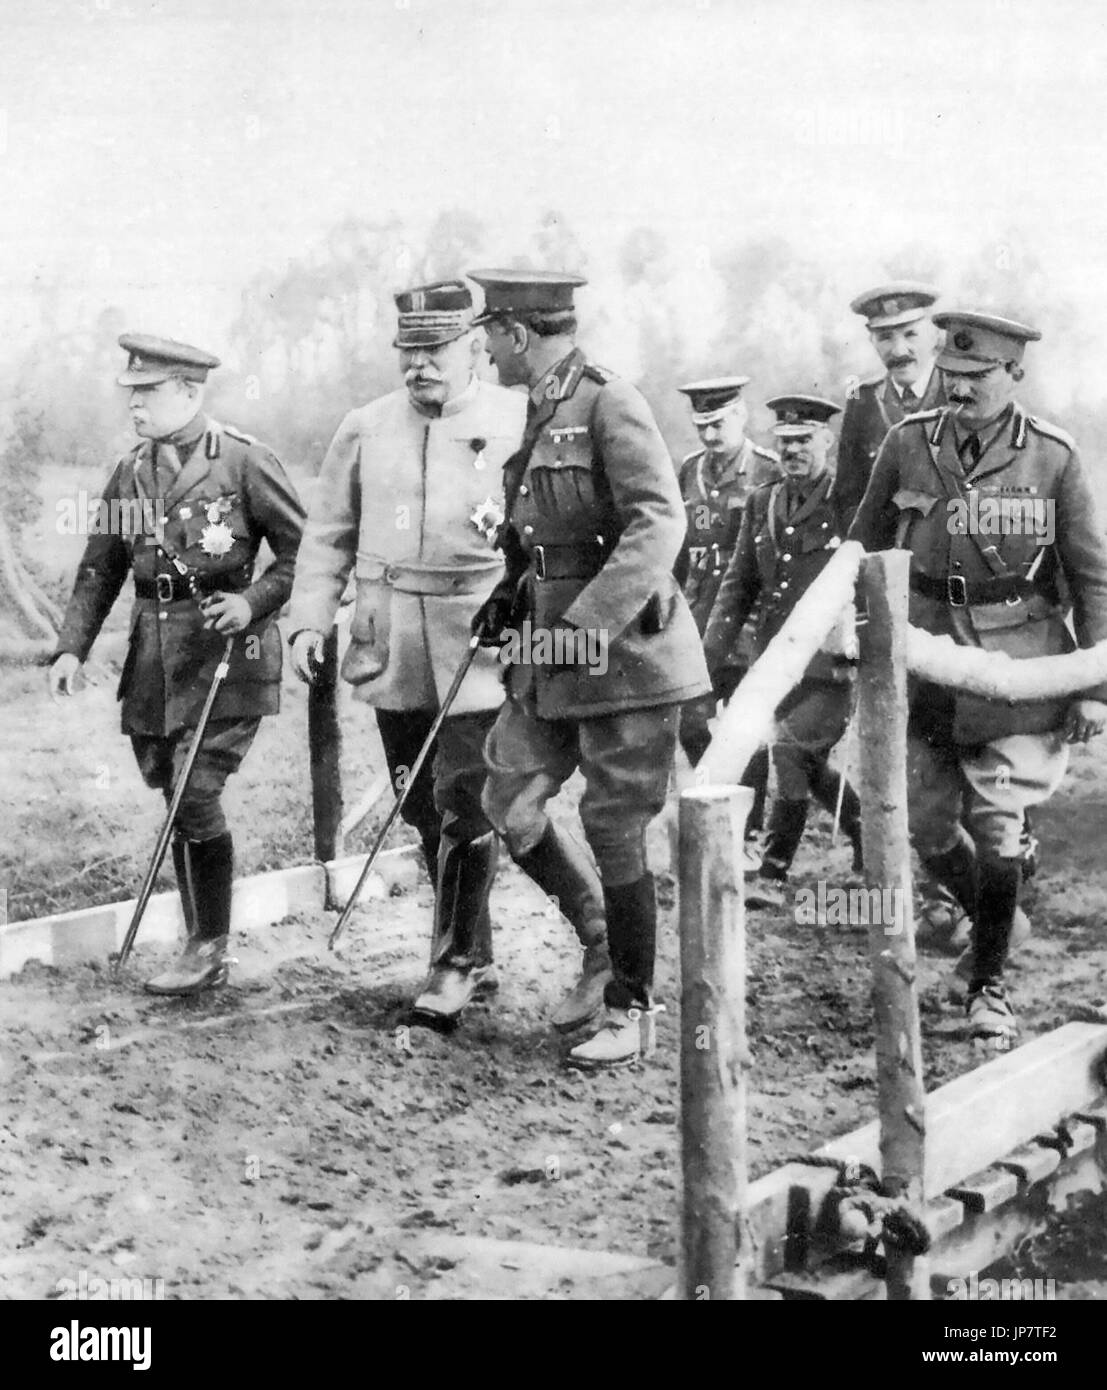 FIRST WORLD WAR  Allied leaders visiting the front line in 1915. From left: John French, Joseph Joffre, Douglas Haig - Stock Image